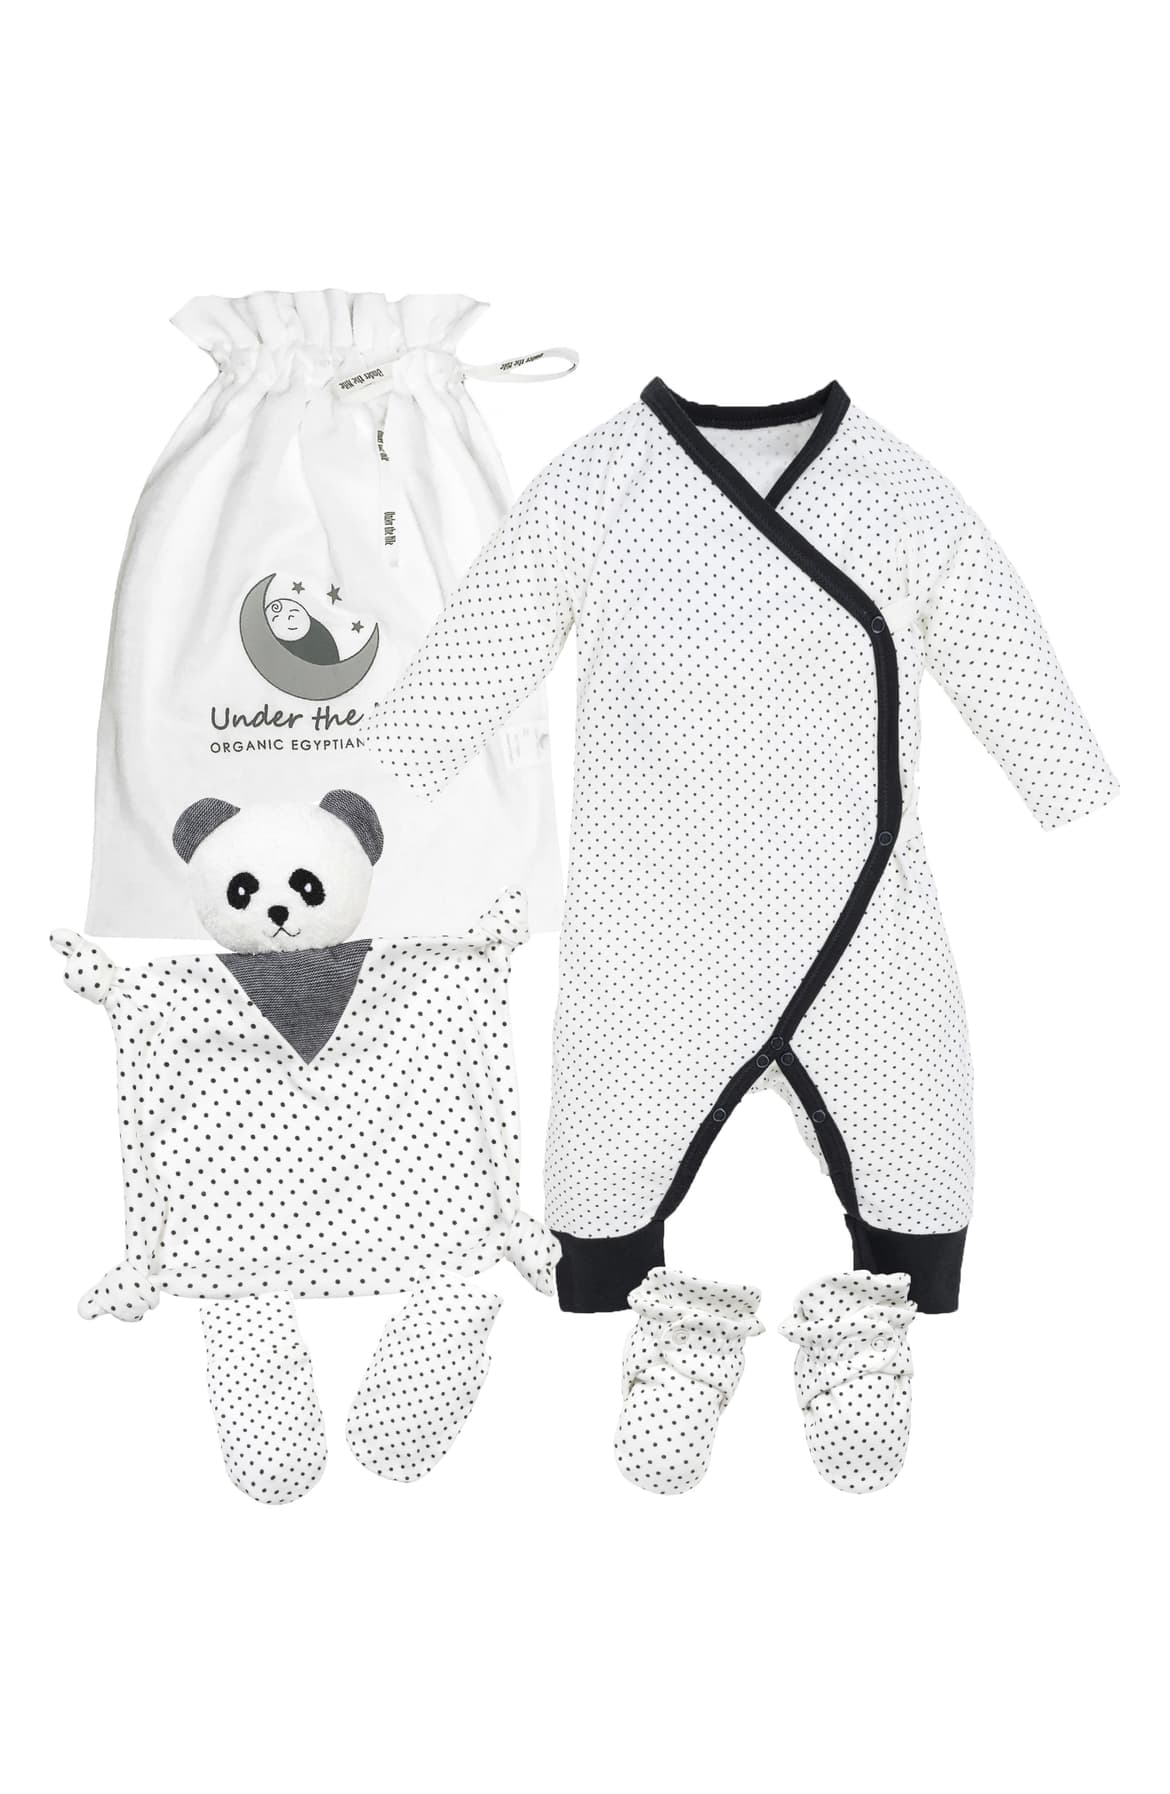 "<p>This sweet set crafted from organic Egyptian cotton includes a wrap romper, mittens, booties and lovie blanket to keep your little one cozy and happy. $85.{&nbsp;}<a  href=""https://shop.nordstrom.com/s/under-the-nile-polka-dot-panda-4-piece-organic-cotton-gift-set-baby/5480367/full?origin=category-personalizedsort&breadcrumb=Home%2FKids%2FBaby%2FUnisex%20Baby%20Clothing&color=black%20and%20white"" target=""_blank"" title=""https://shop.nordstrom.com/s/under-the-nile-polka-dot-panda-4-piece-organic-cotton-gift-set-baby/5480367/full?origin=category-personalizedsort&breadcrumb=Home%2FKids%2FBaby%2FUnisex%20Baby%20Clothing&color=black%20and%20white"">Shop it{&nbsp;}</a>(Image: Nordstrom){&nbsp;}</p>"